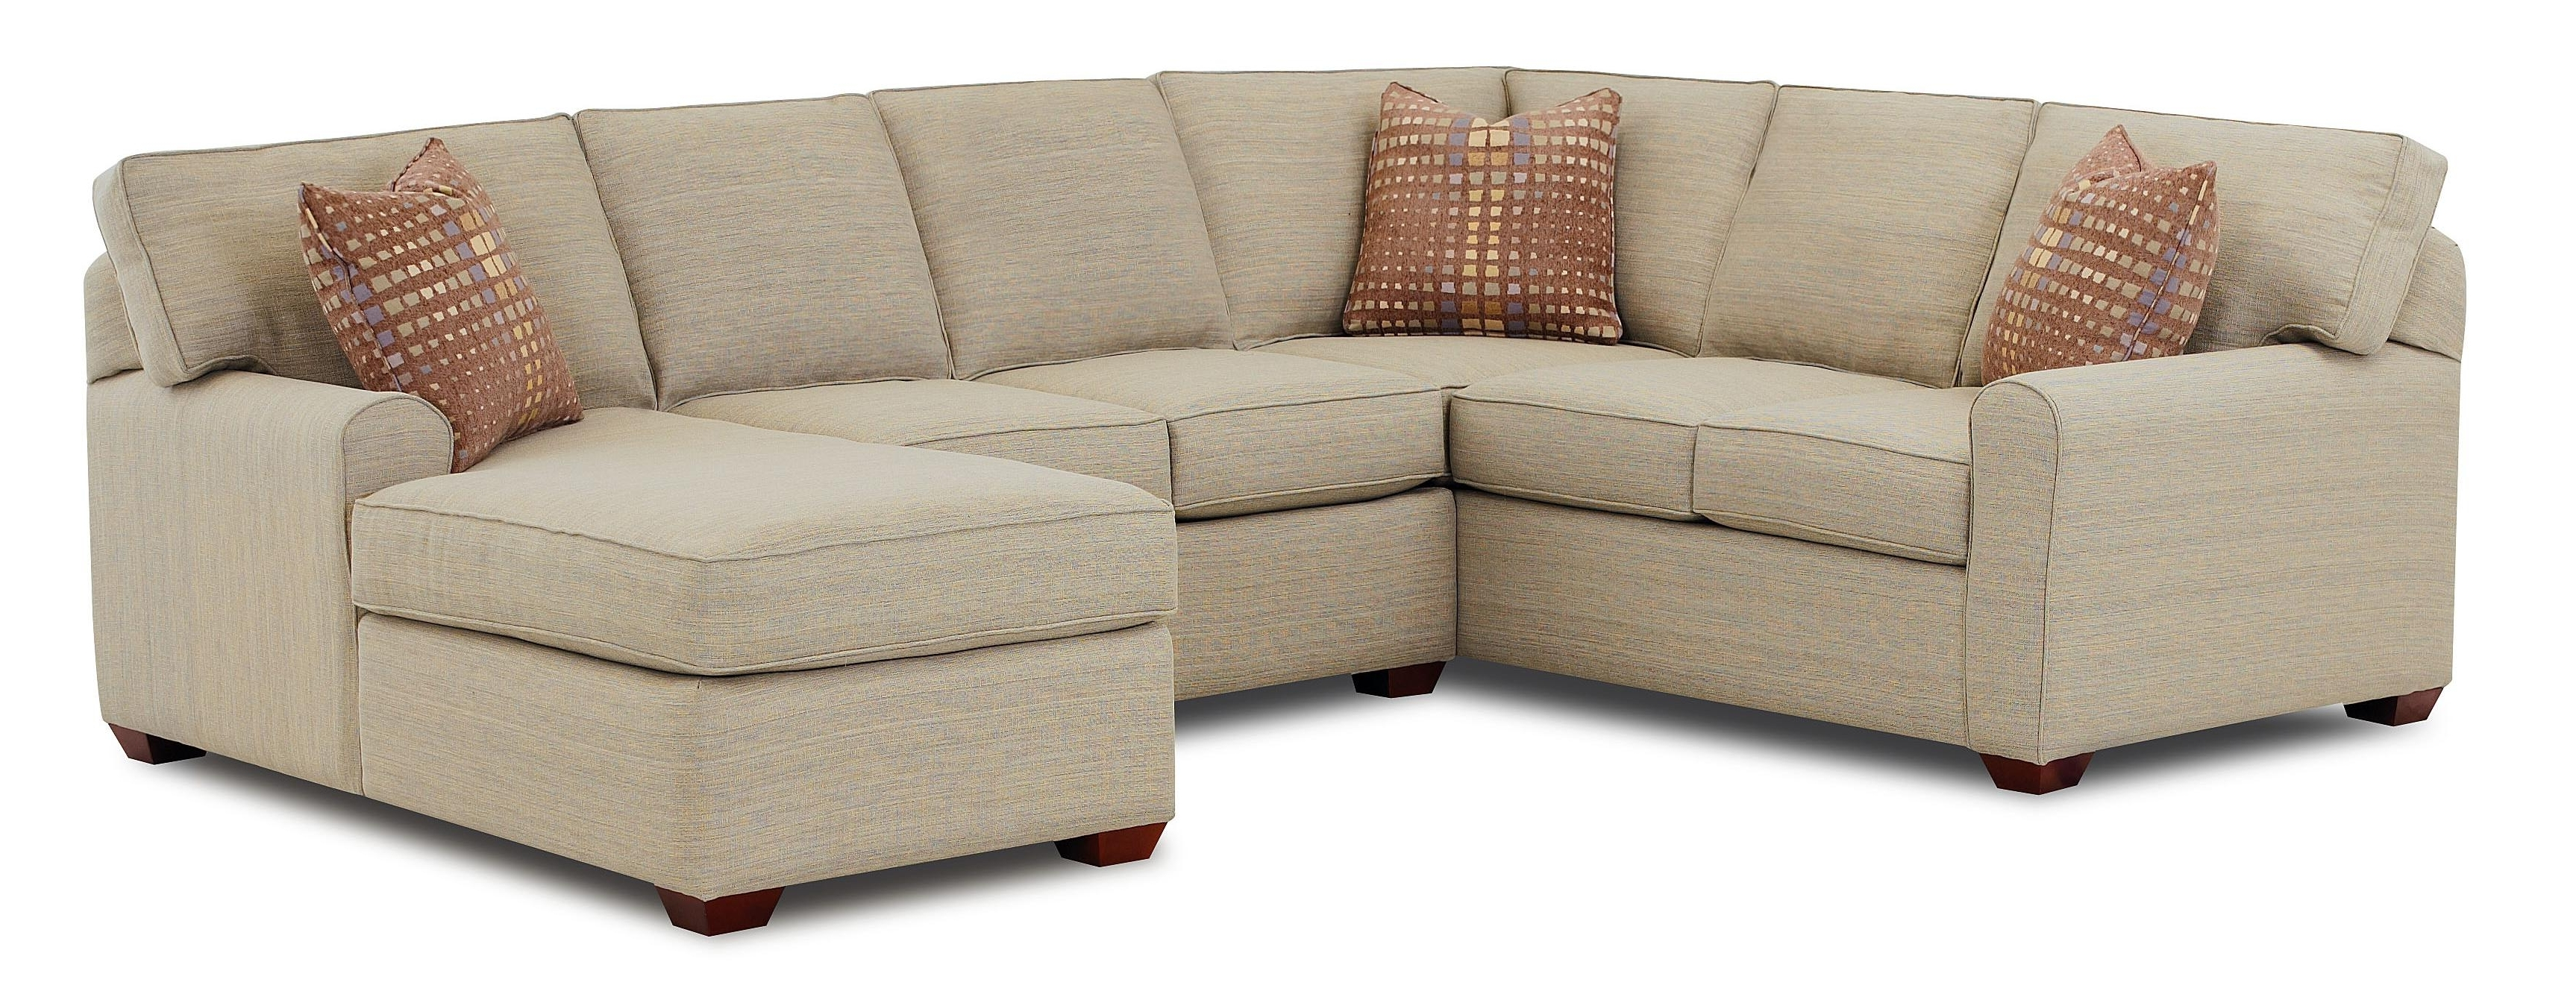 Furniture: Chaise Sofa Sectional Chaise Sectional Inside Favorite Chaise Sofa Sectionals (View 11 of 15)